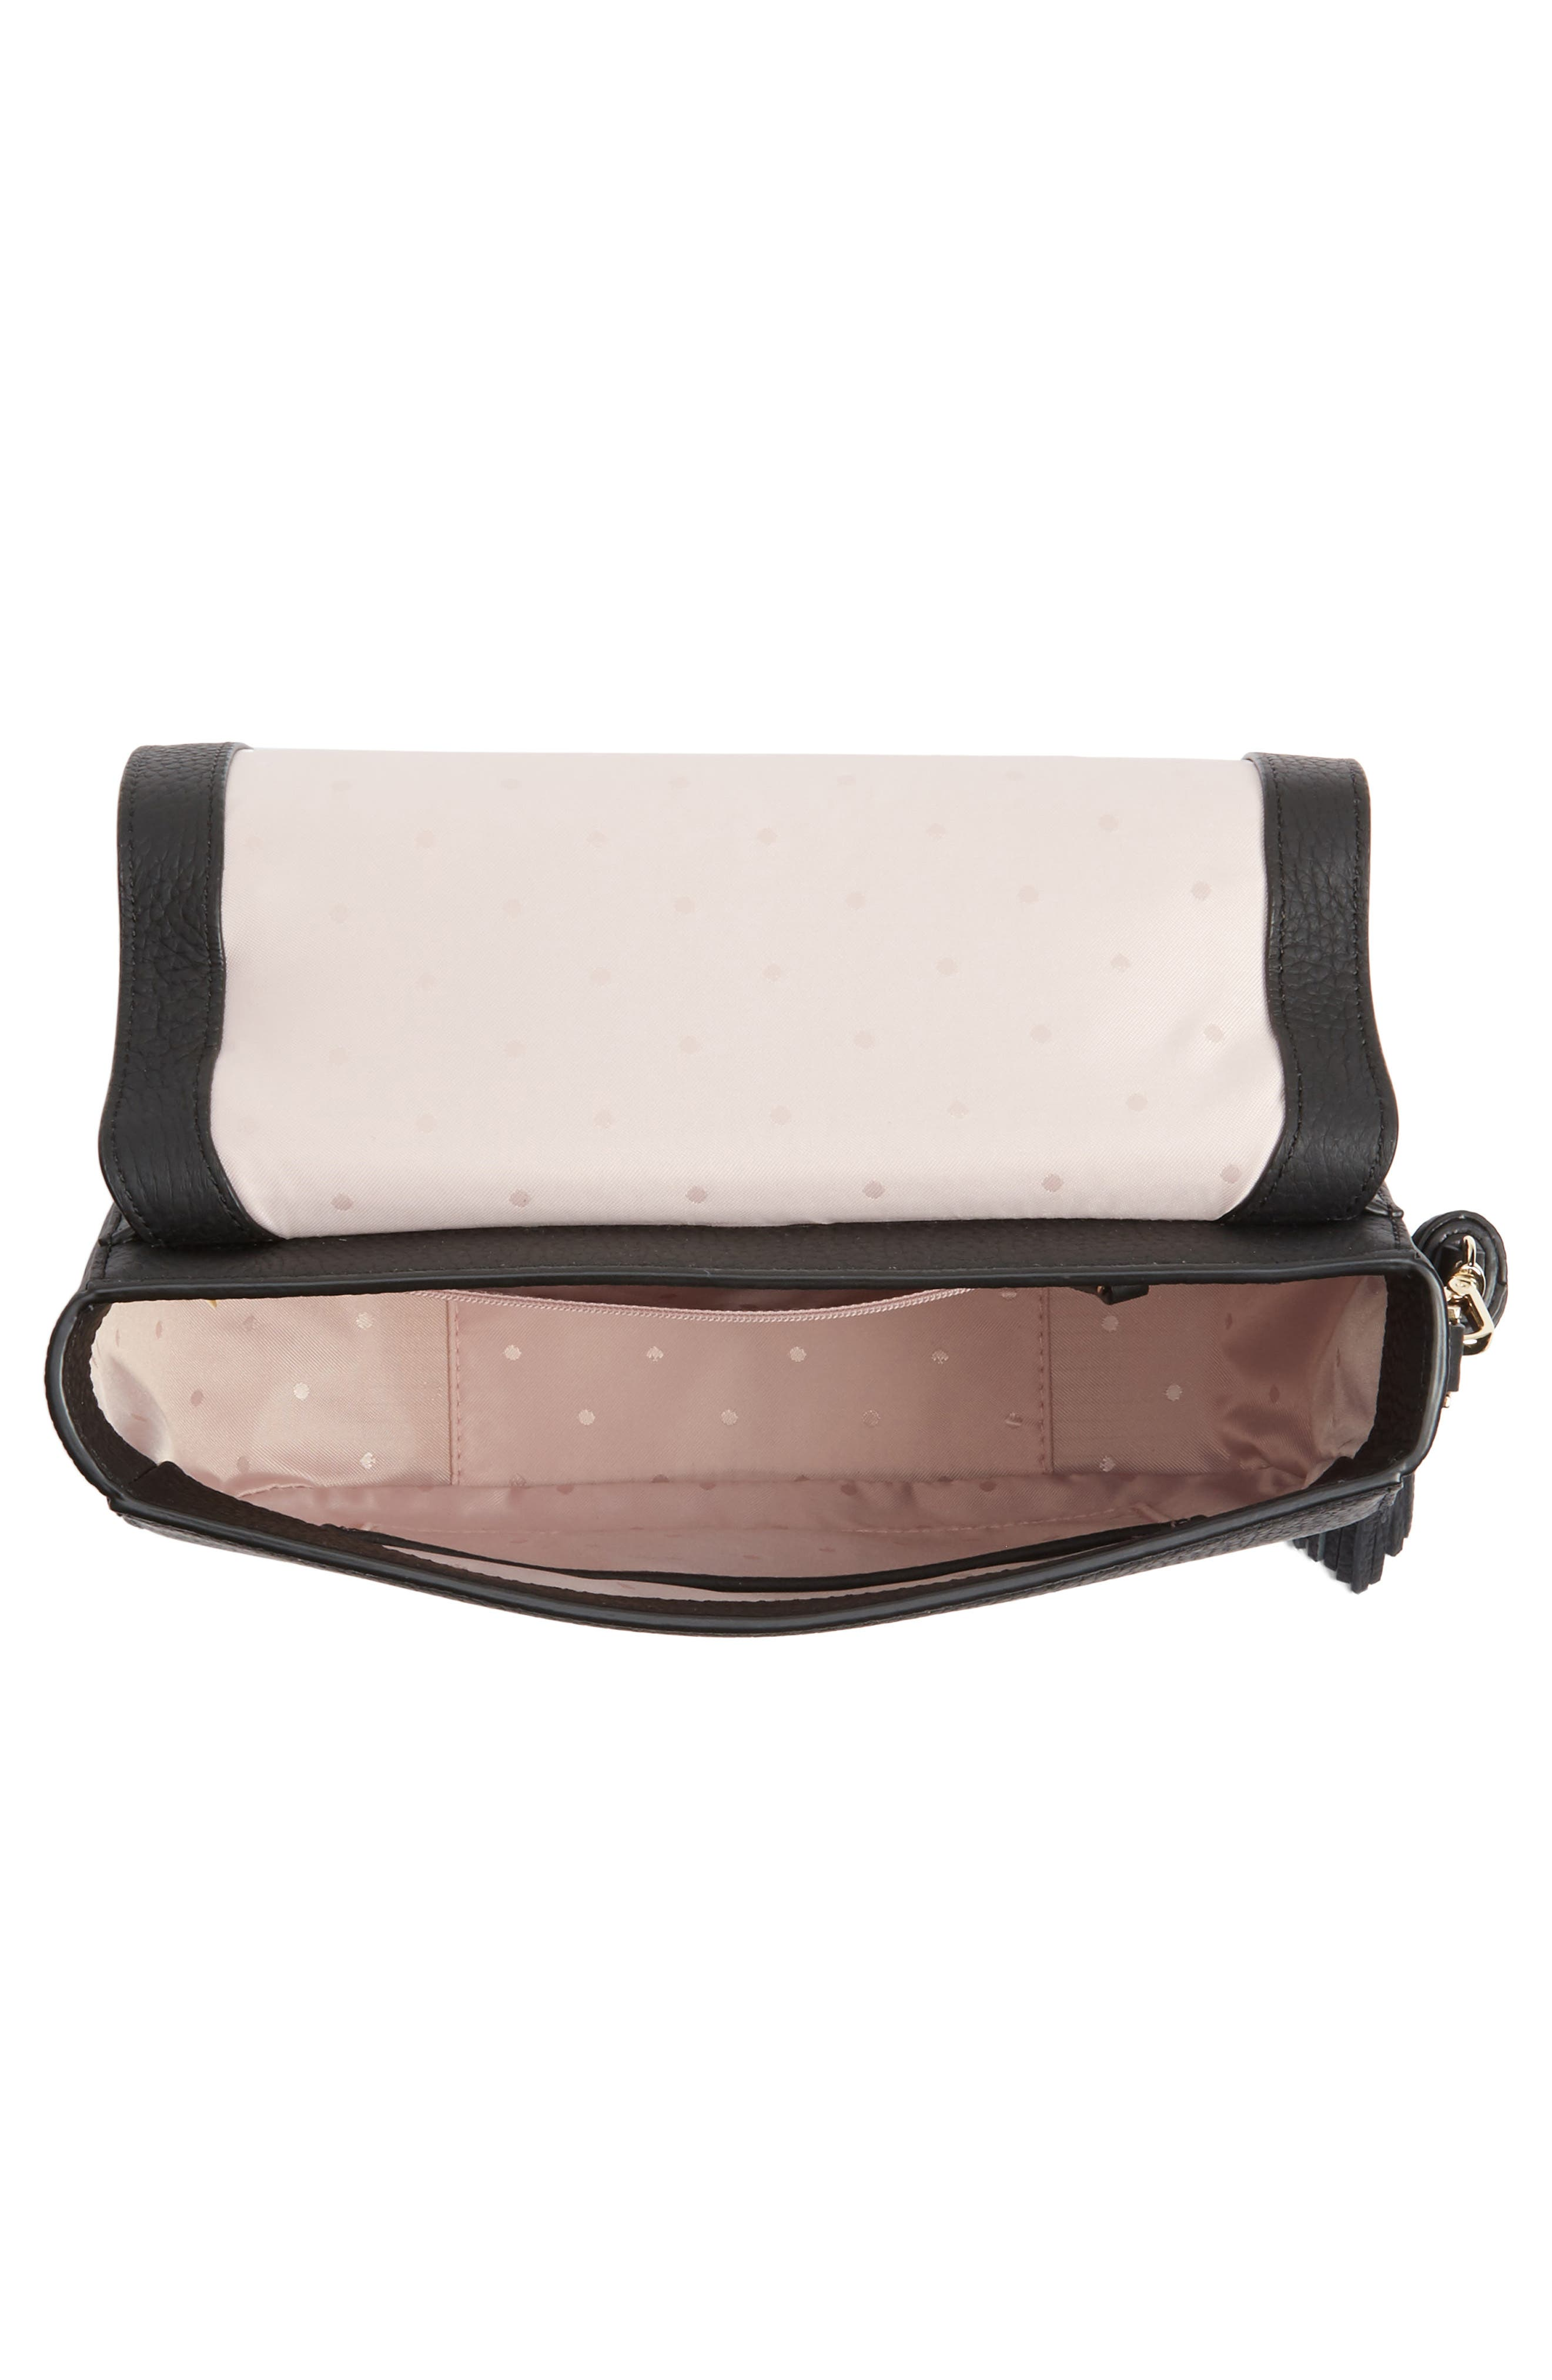 Alternate Image 3  - kate spade new york daniels drive - tressa leather crossbody bag